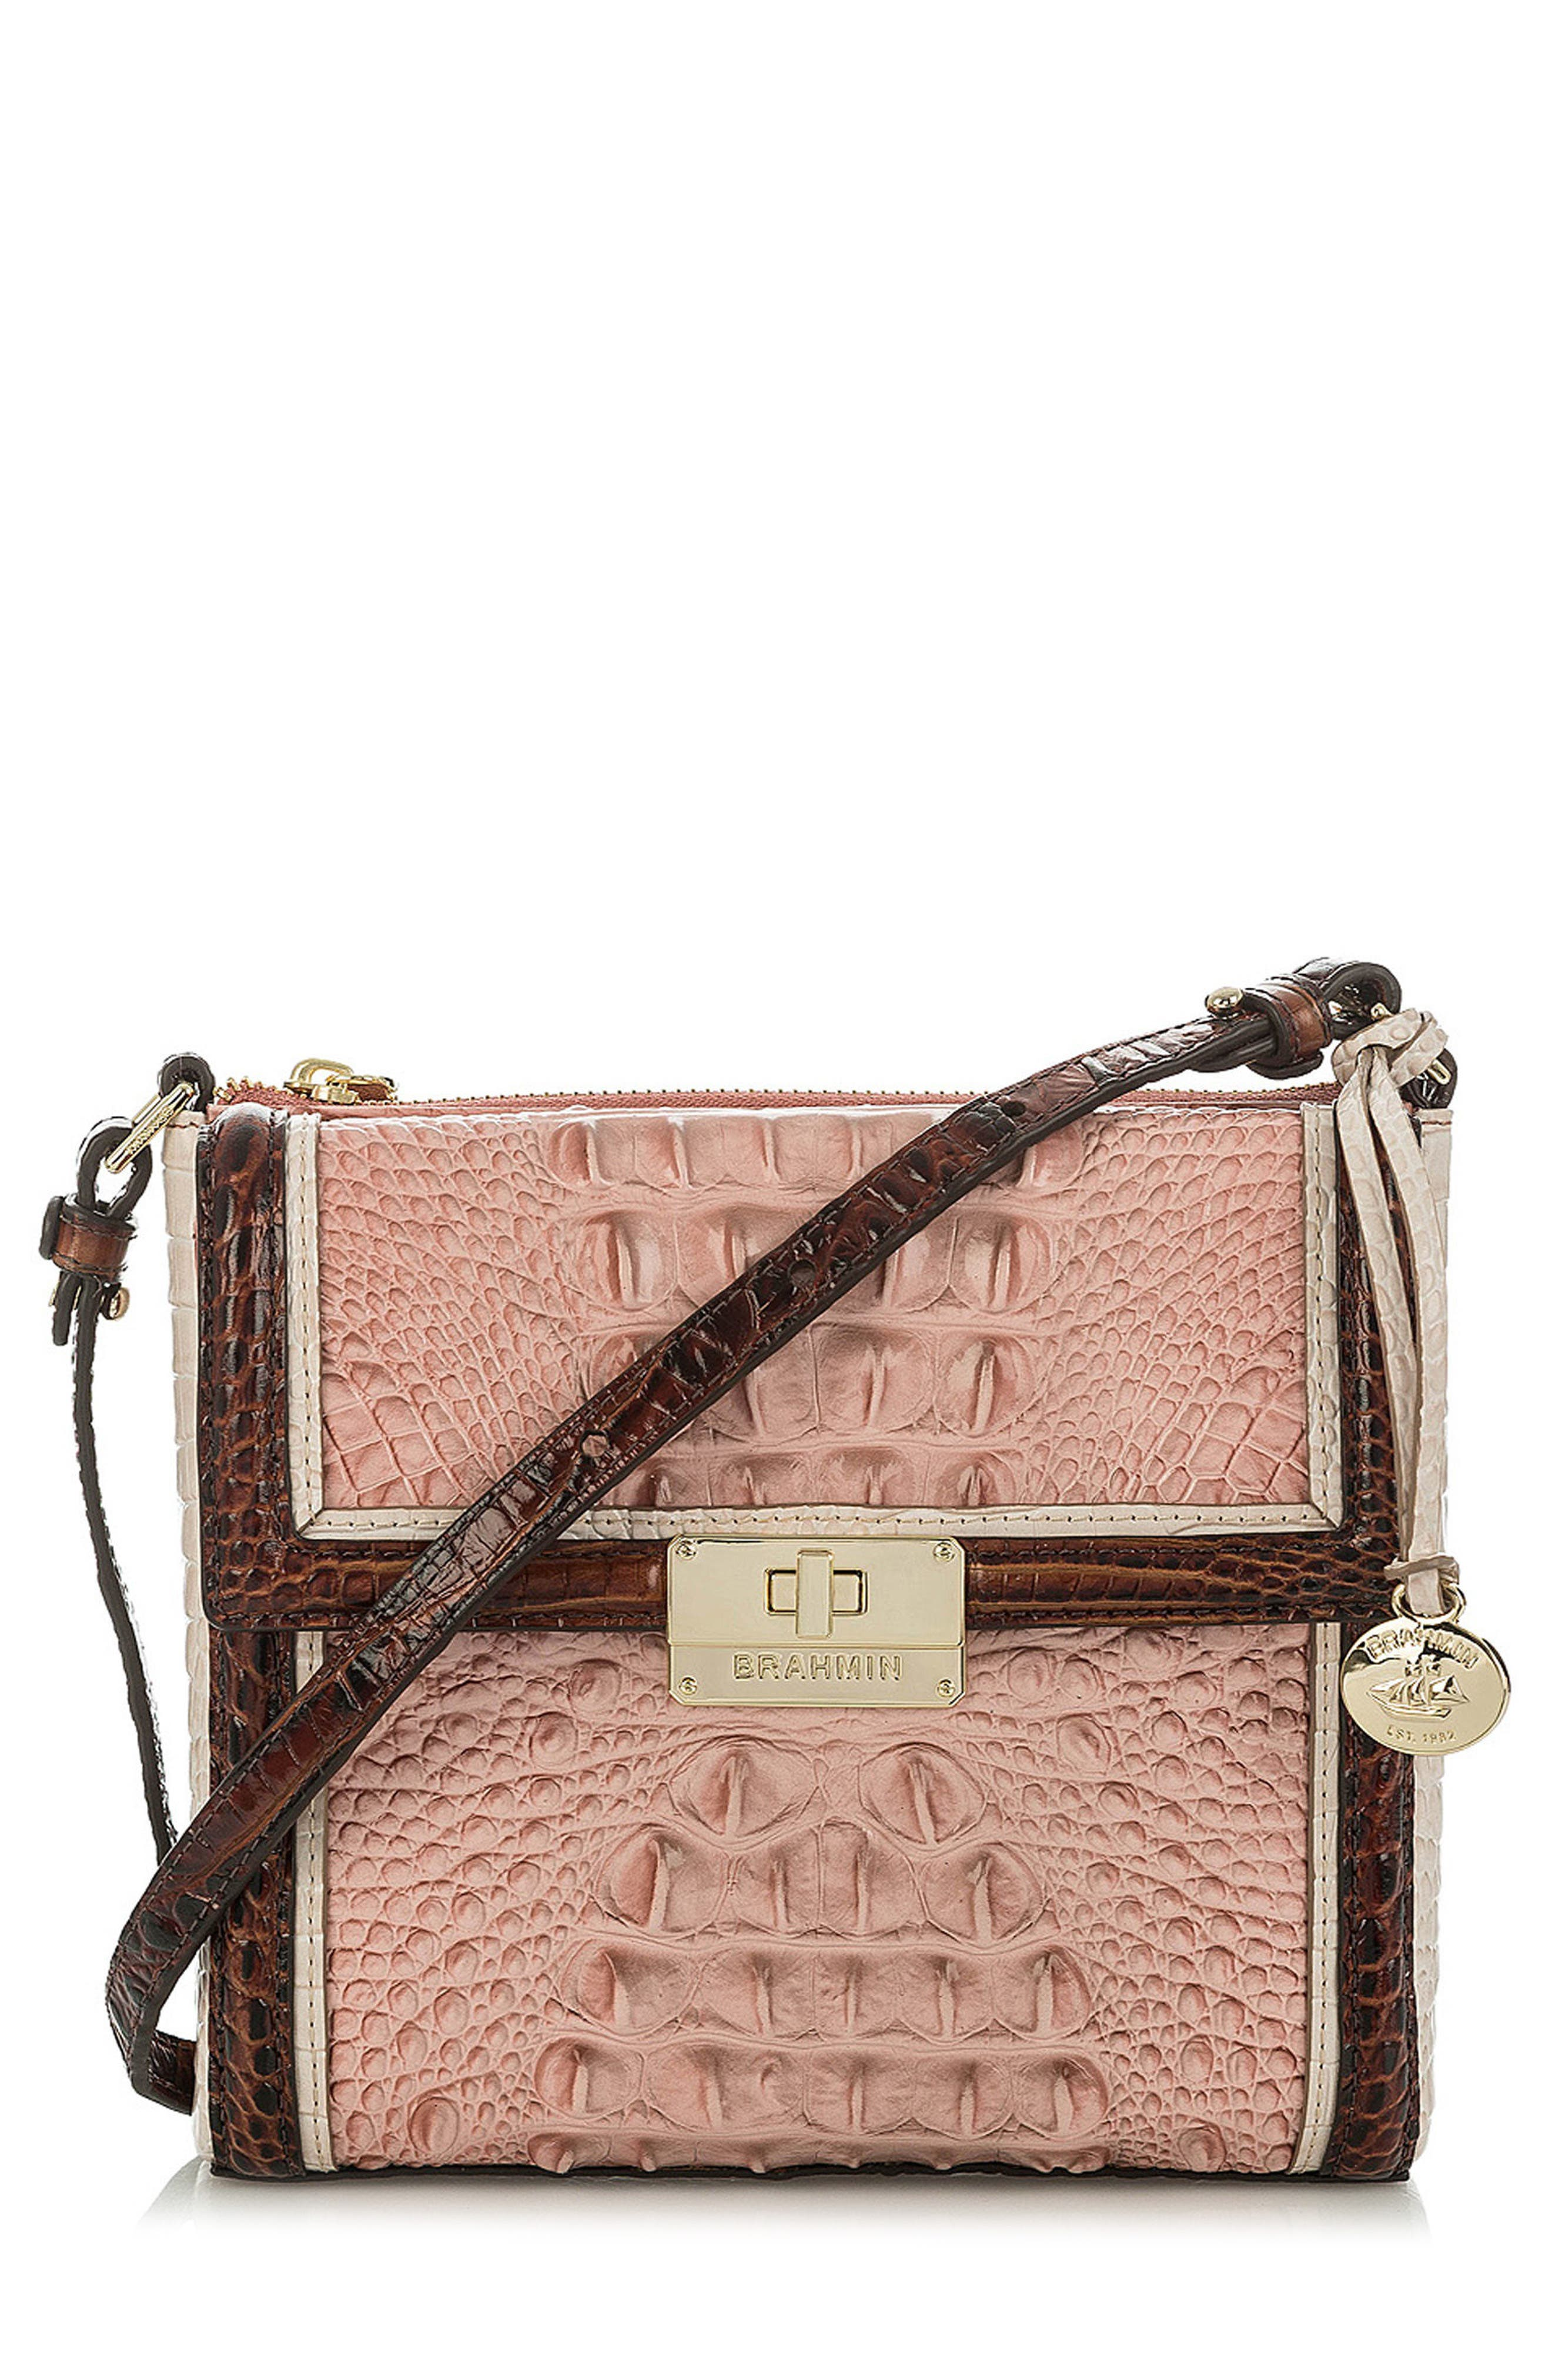 Marquis Chambery - Manhattan Croc Embossed Leather Crossbody Bag,                             Main thumbnail 1, color,